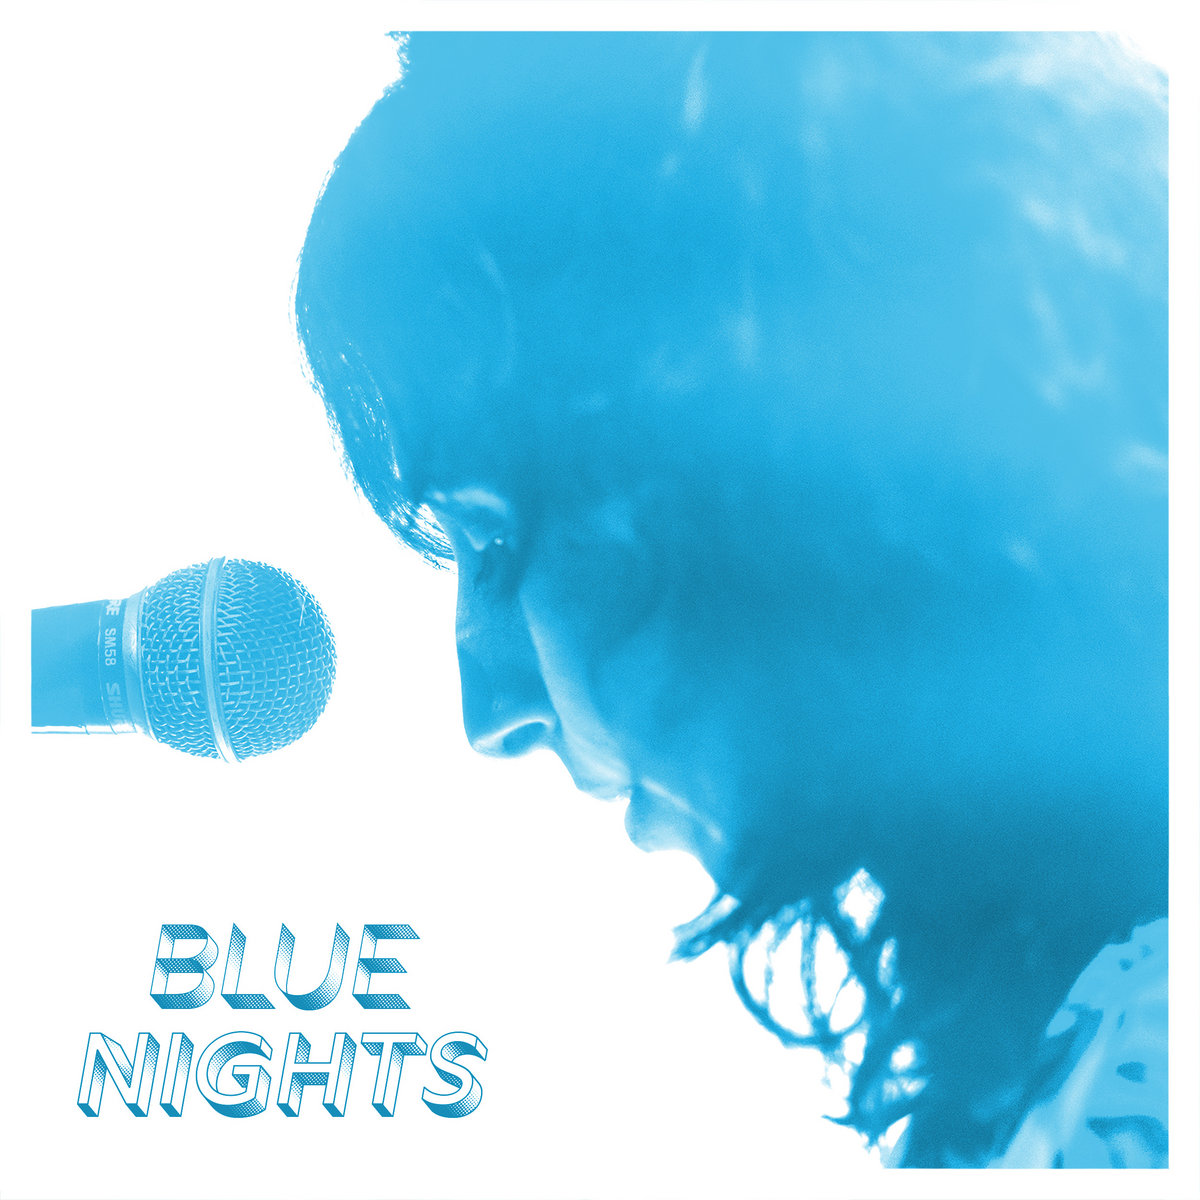 Blue Nights (single edit) by Fastlane Candies